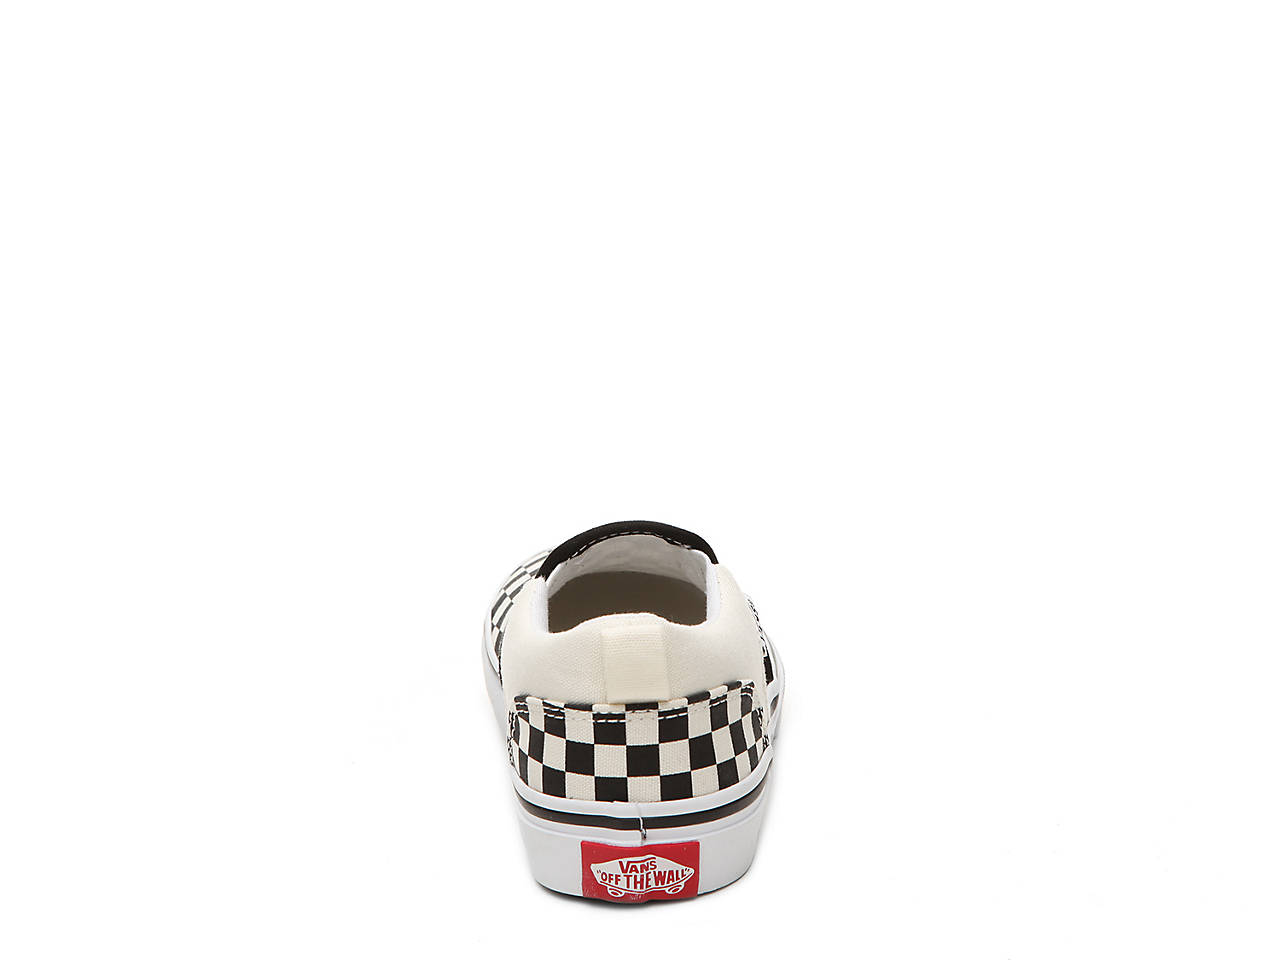 35f746de84 Vans Asher Checkers Toddler   Youth Slip-On Sneaker Kids Shoes